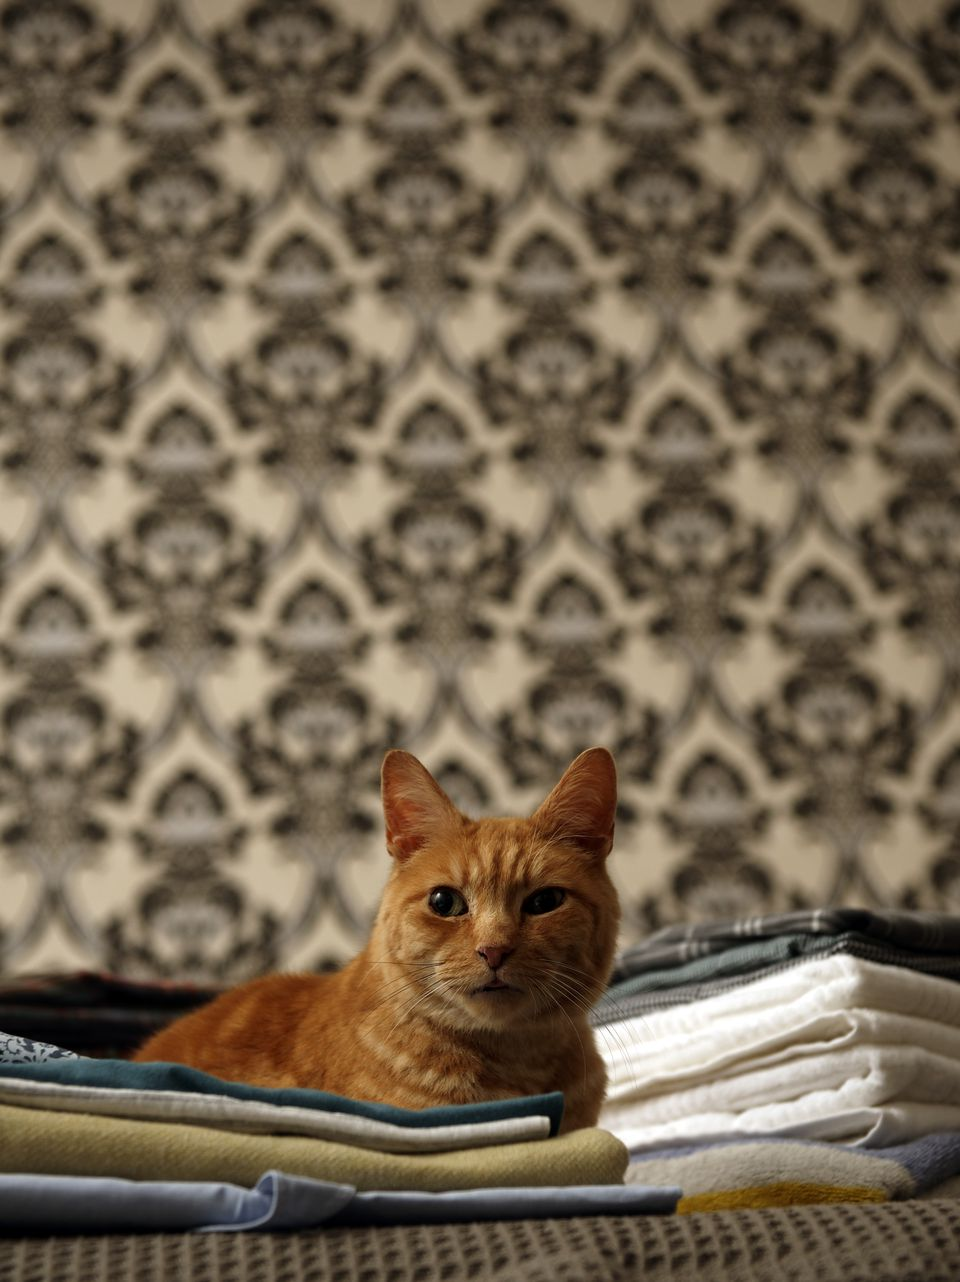 Ginger tabby cat sitting on top of pile folded laundry